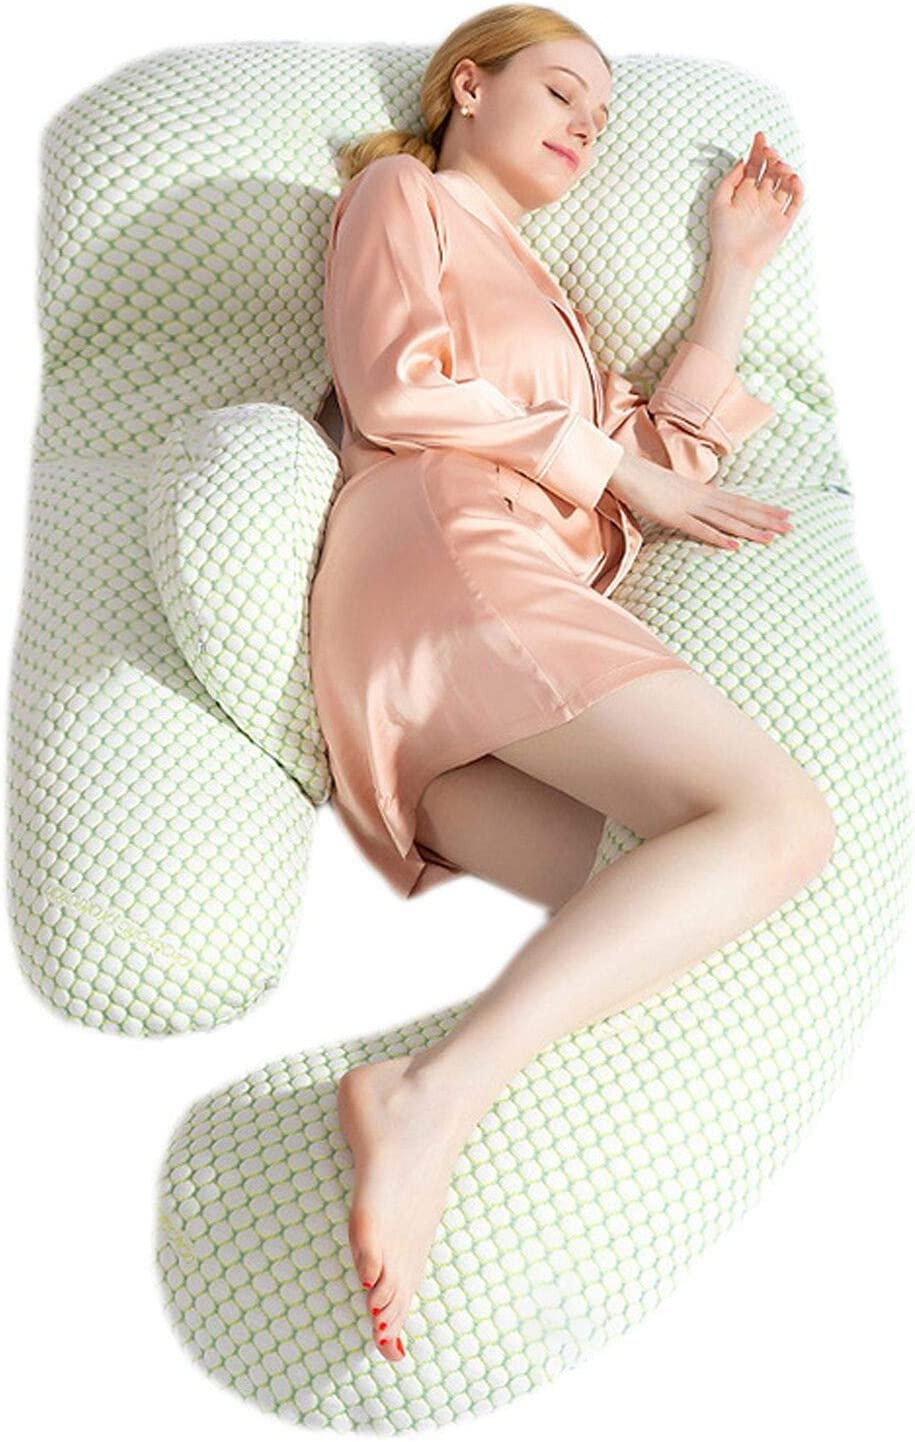 Pregnancy Pillow, Upgrade Body Pillow Support Head Back Shoulder Tummy Hip Leg Belly Full Body, G Shaped Women Maternity Pillow for Adults and Nursing, Detachable WashableTotal Body for Sleeping.